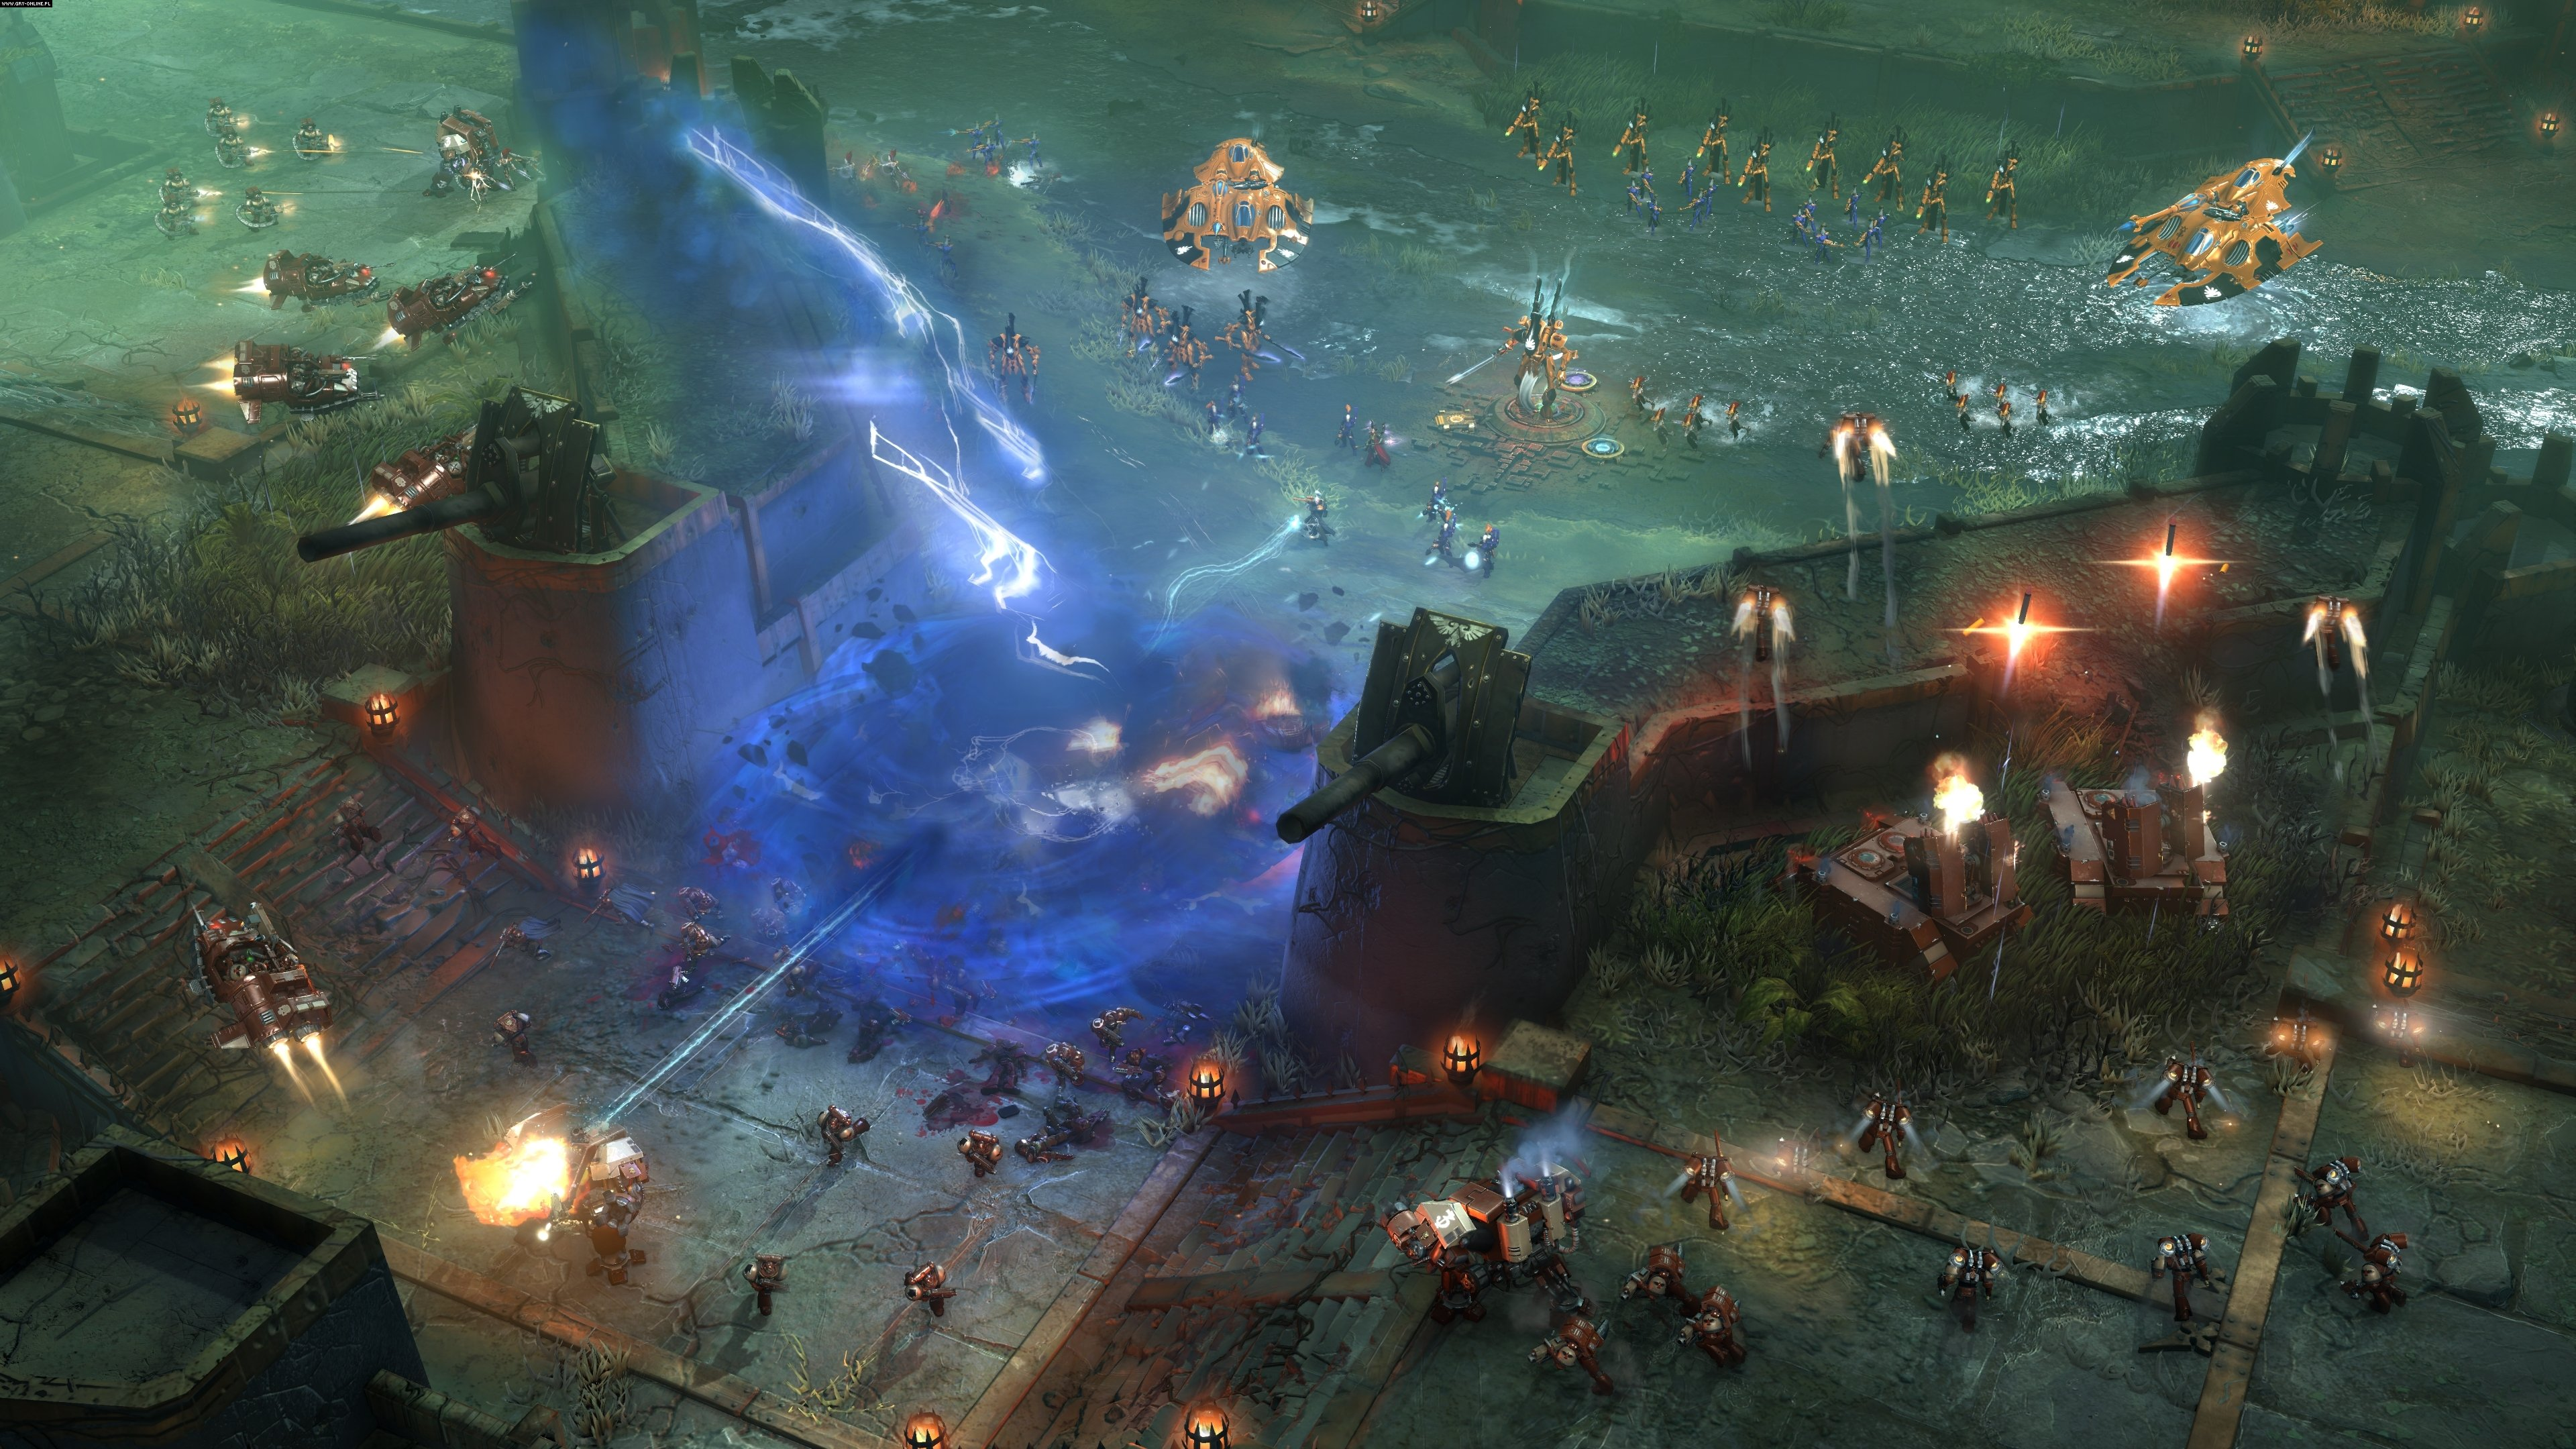 Warhammer 40,000: Dawn of War III PC Games Image 6/32, Relic Entertainment, SEGA